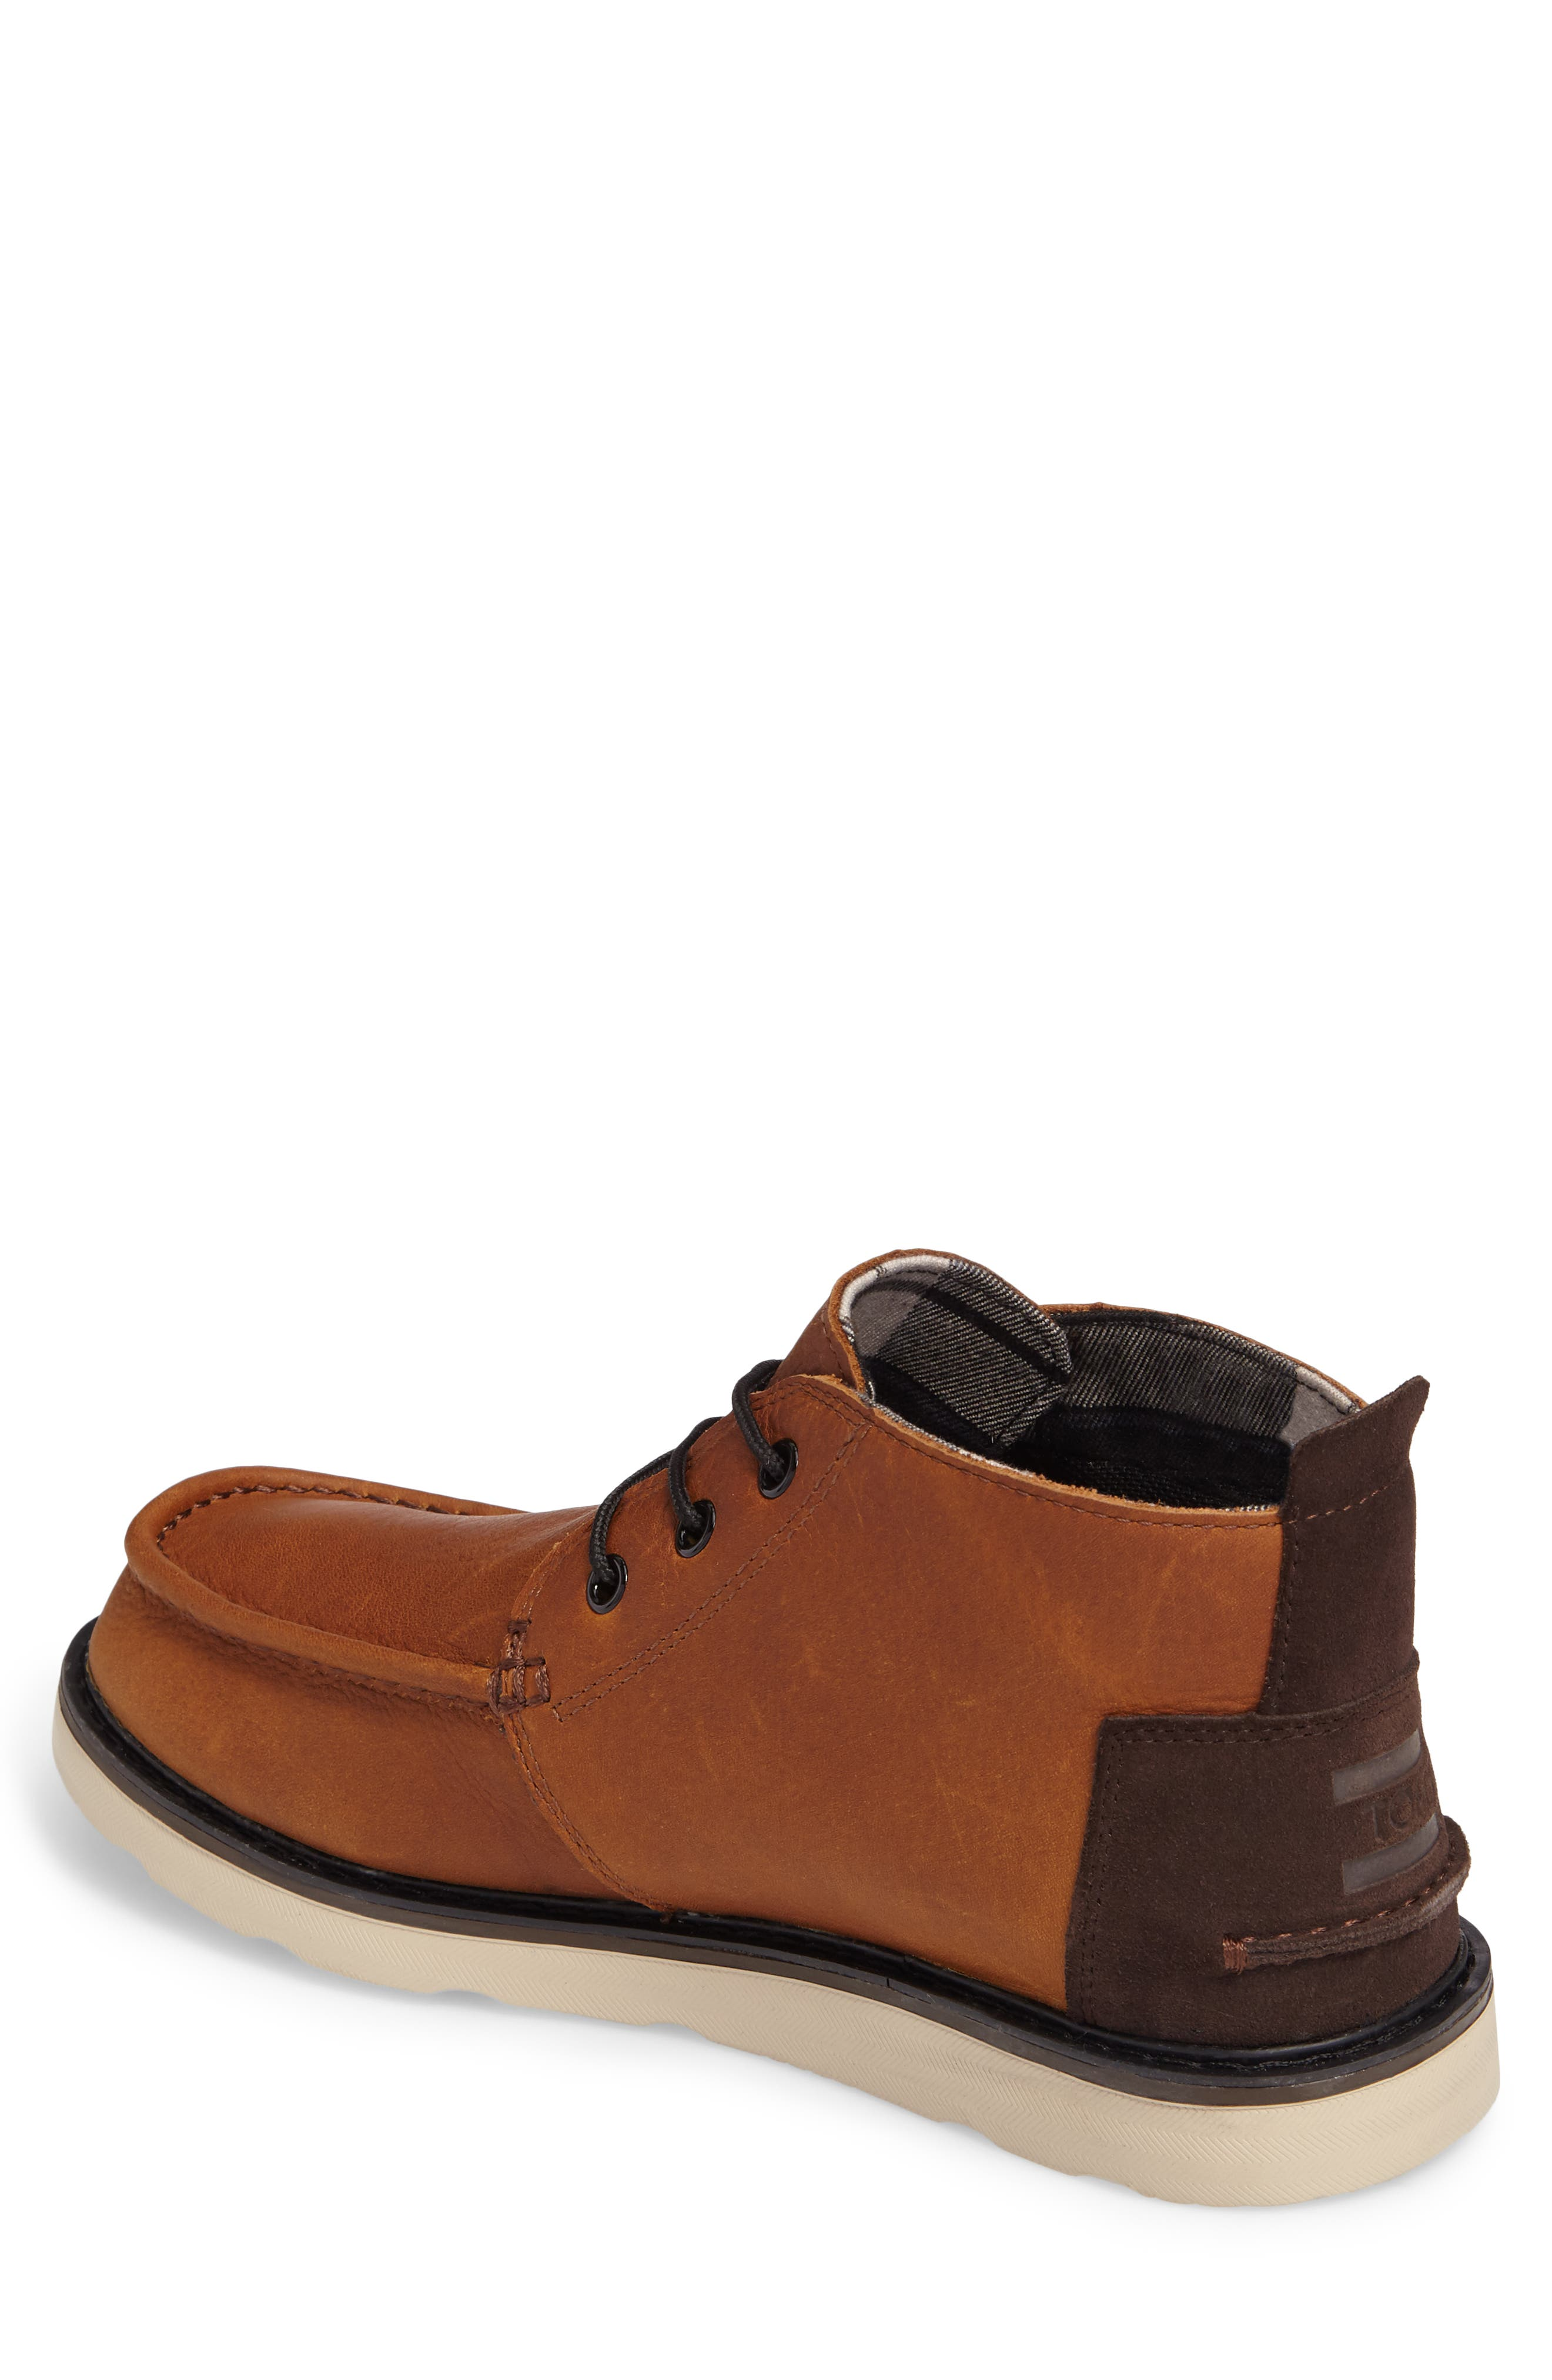 Alternate Image 2  - TOMS Waterproof Chukka Boot (Men)